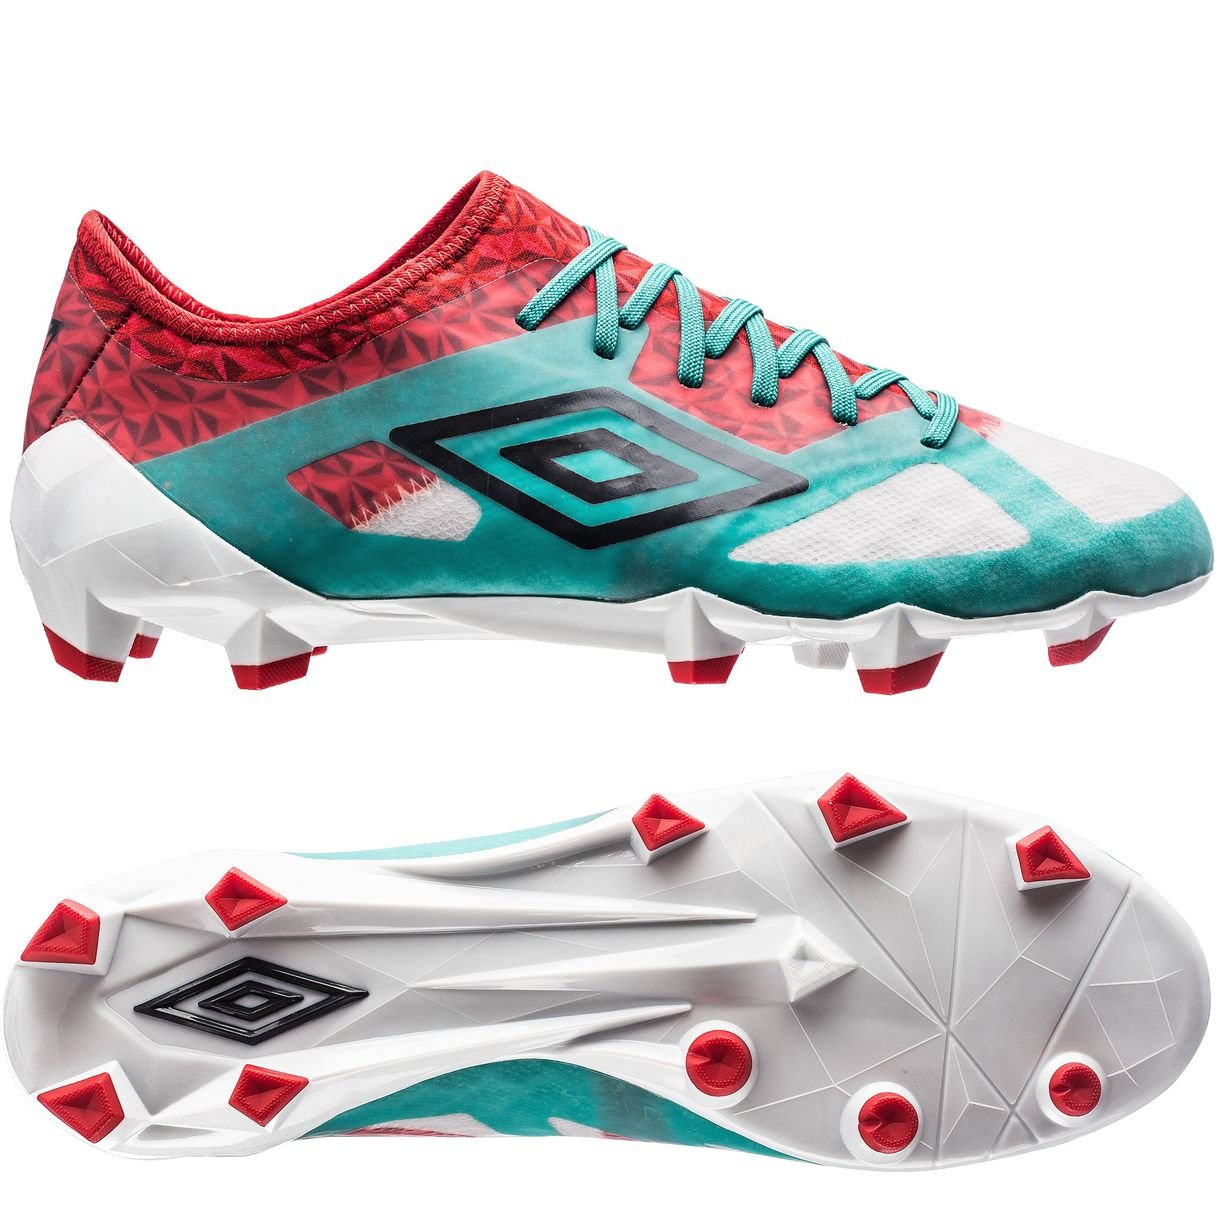 ... Click to enlarge image umbro velocita 3 pro hg dawn blue carbon fiery  red a. 30854e34c5dc5